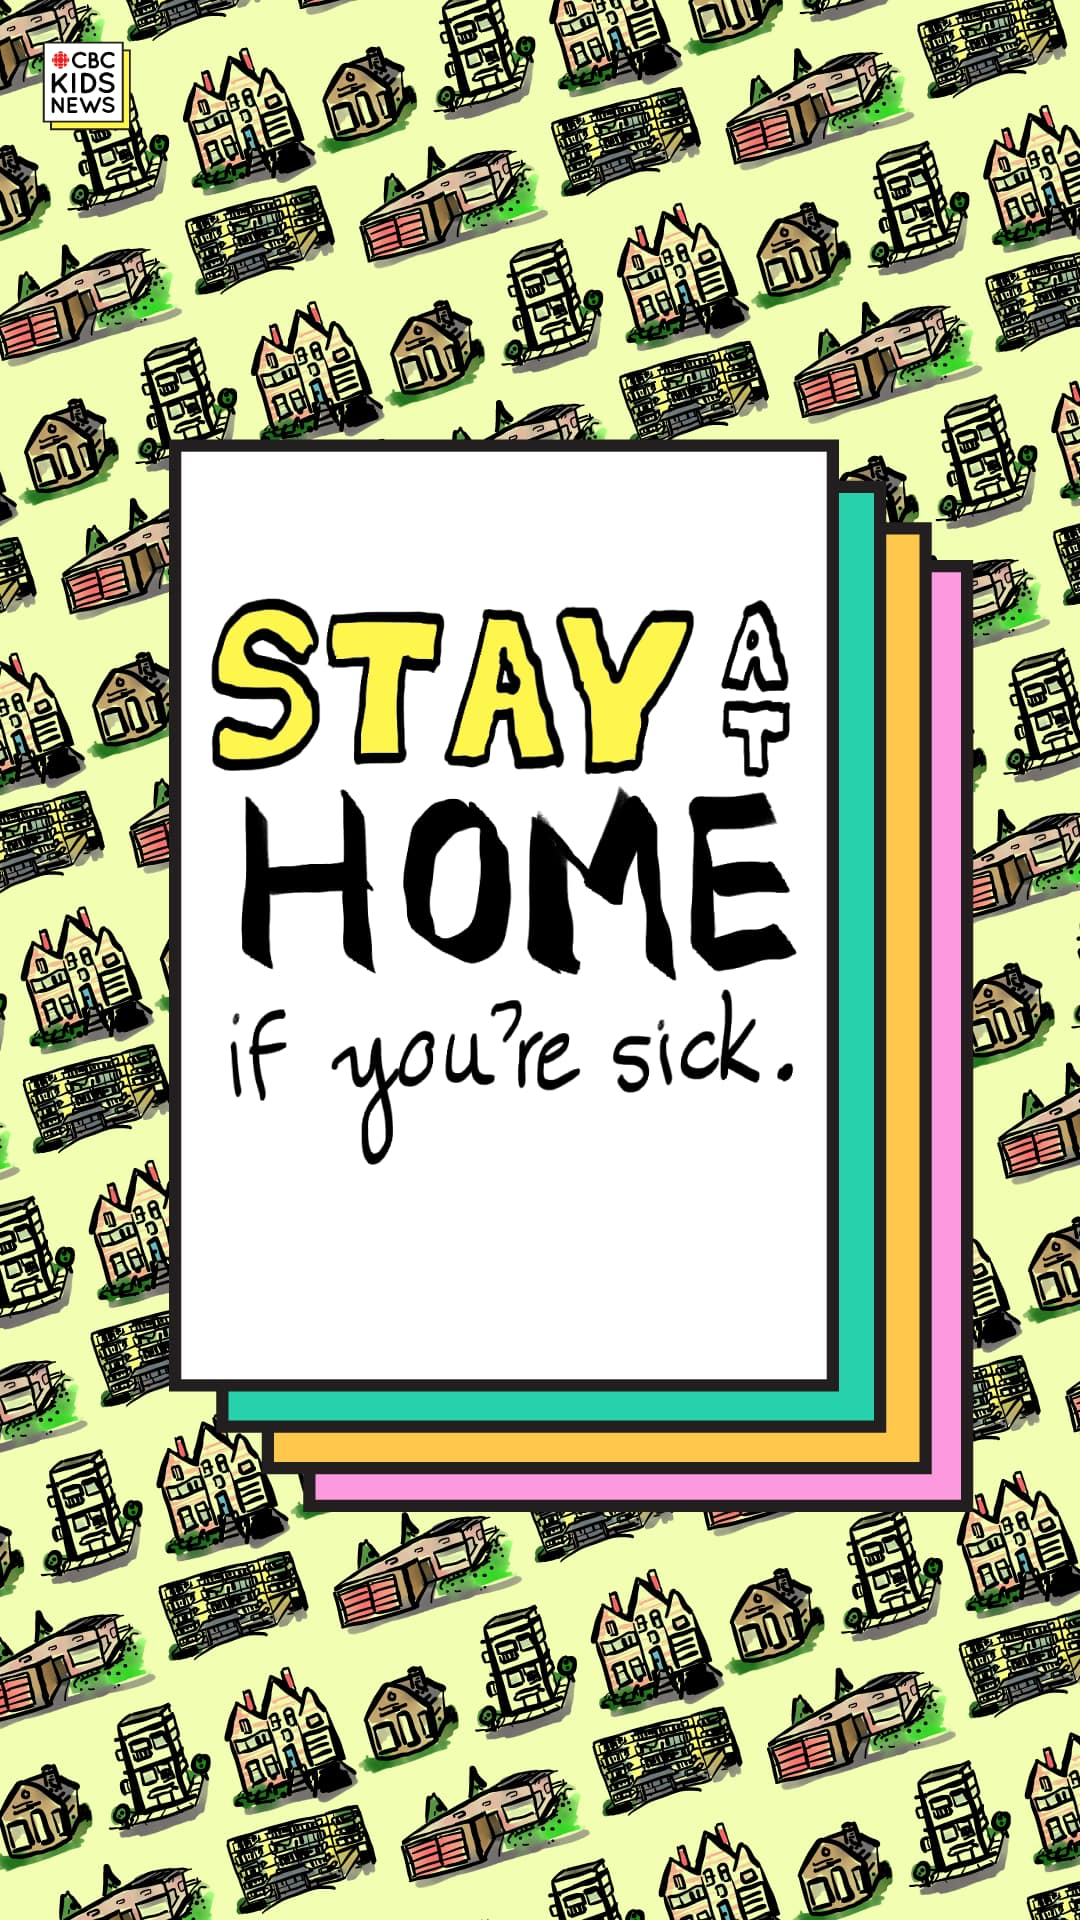 Stay at home if you're sick.